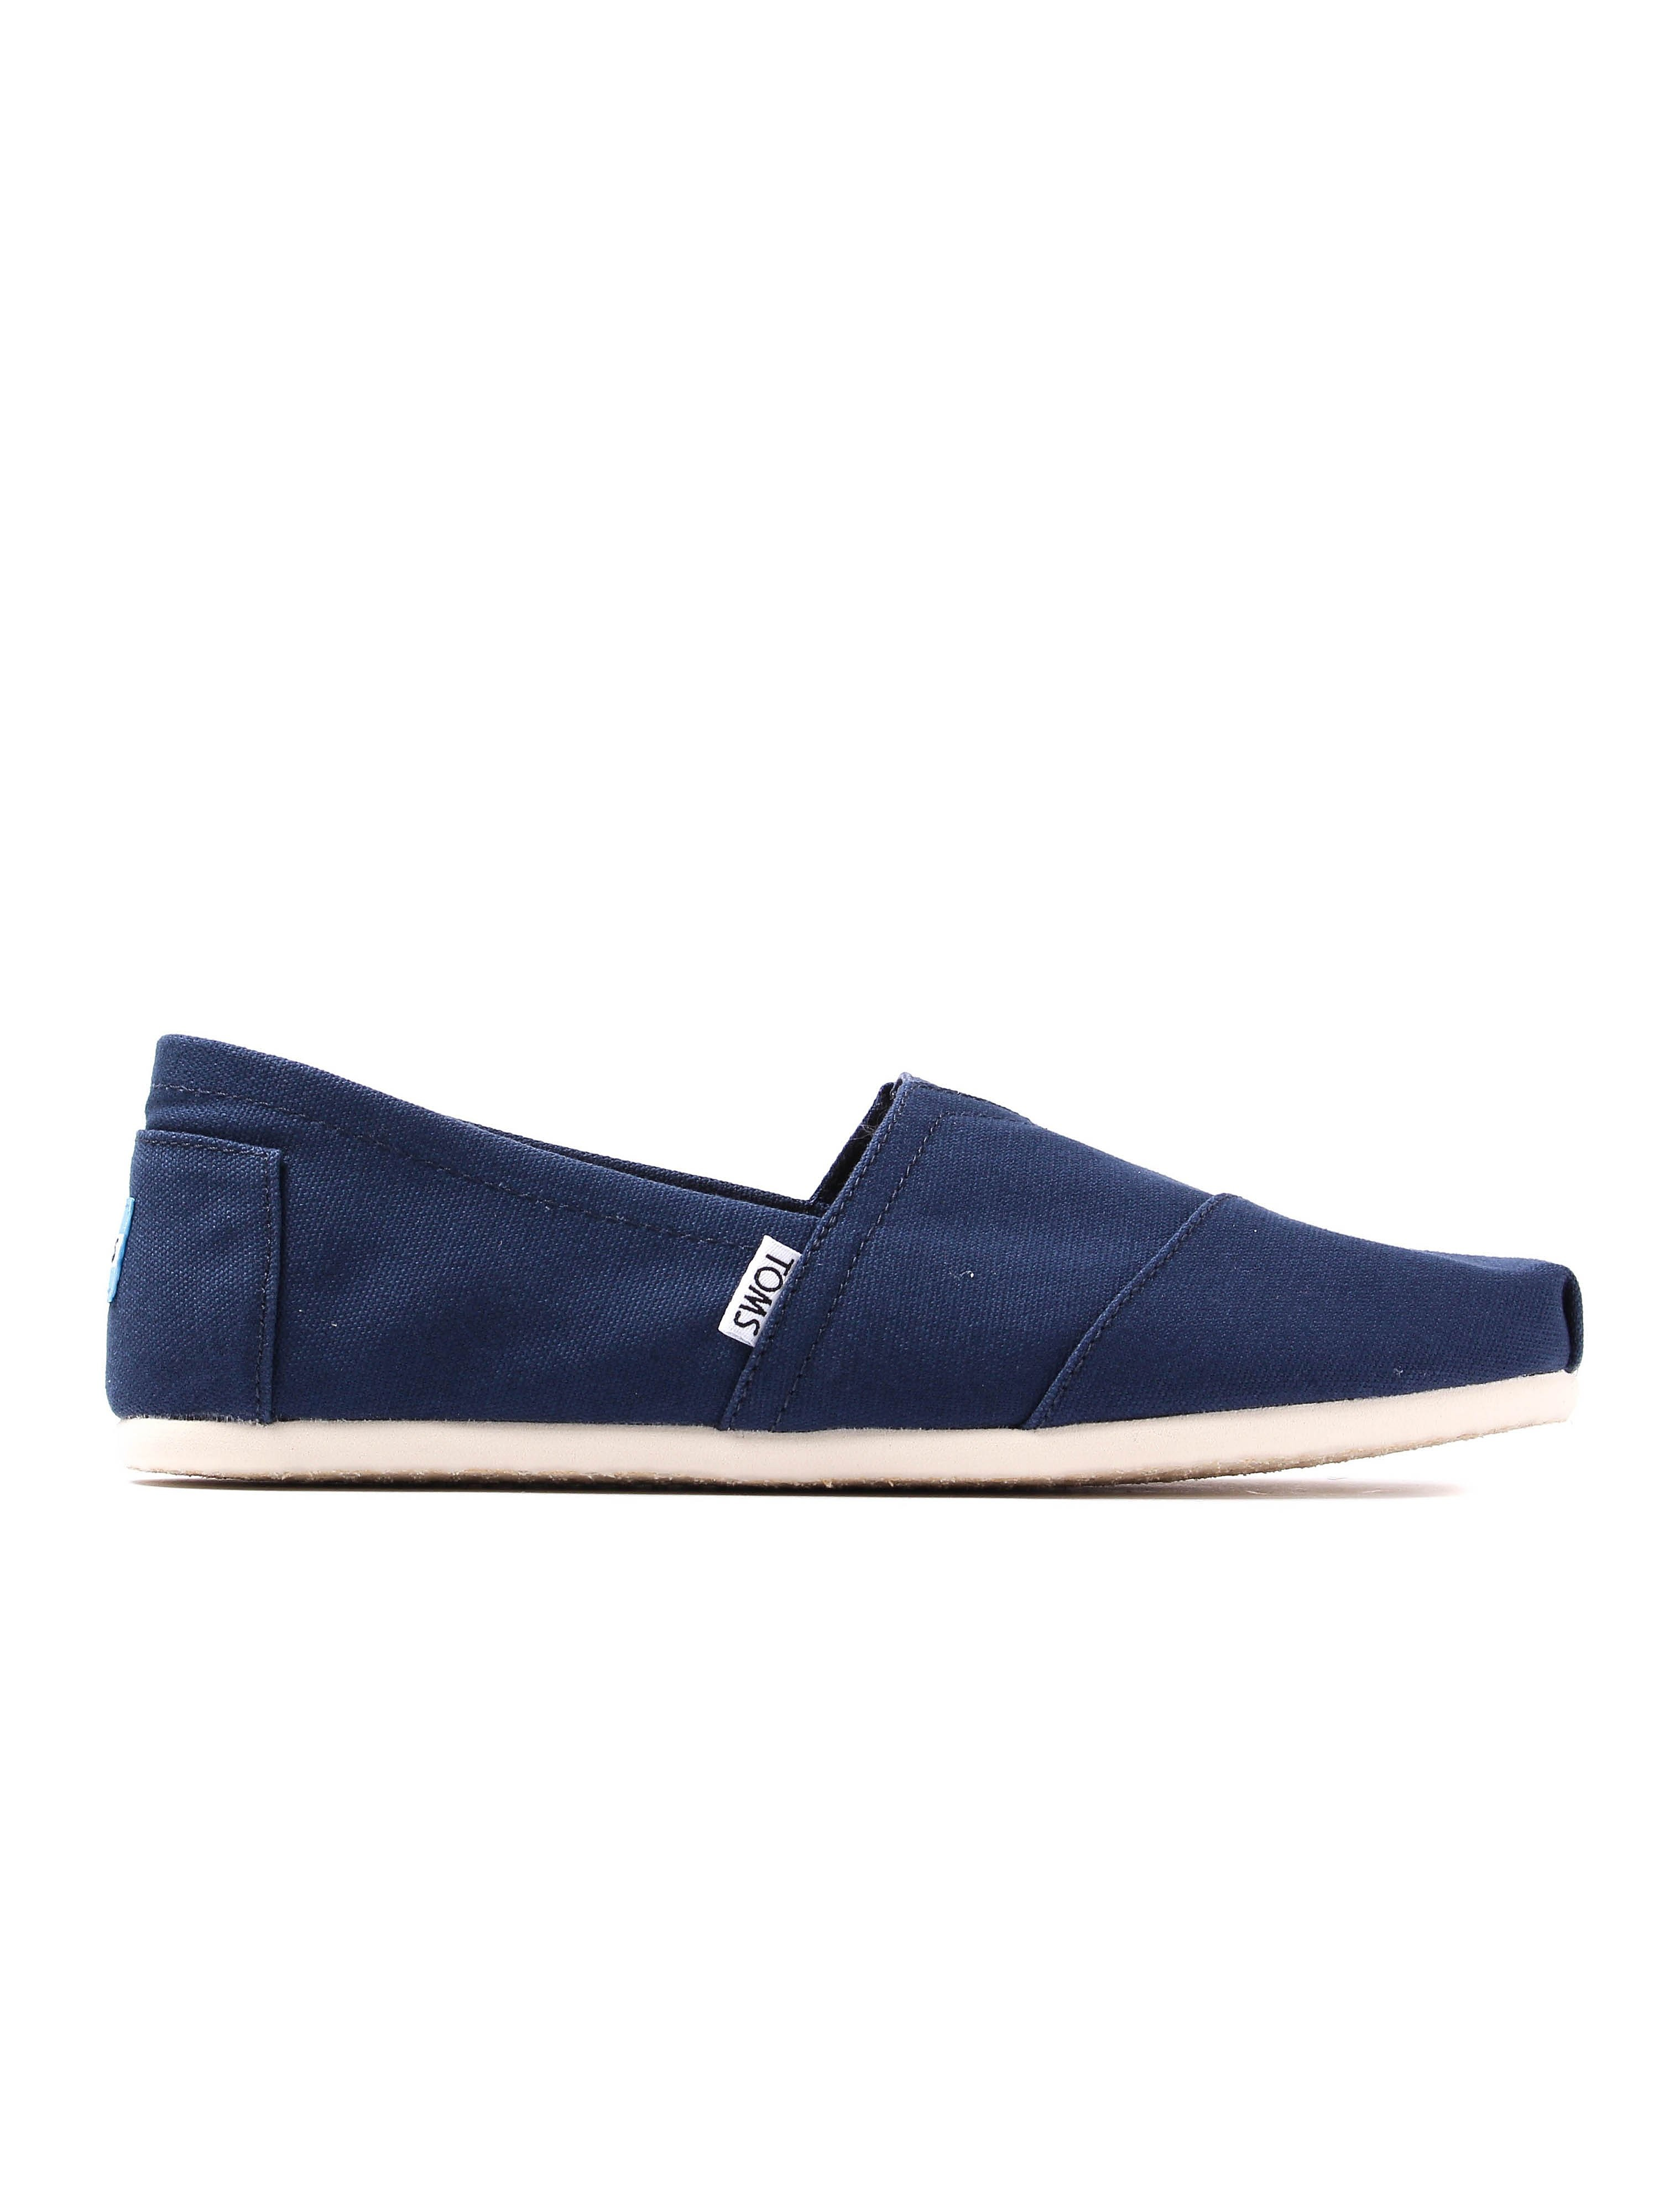 Toms Mens Classic Canvas Slip-On Shoes - Navy